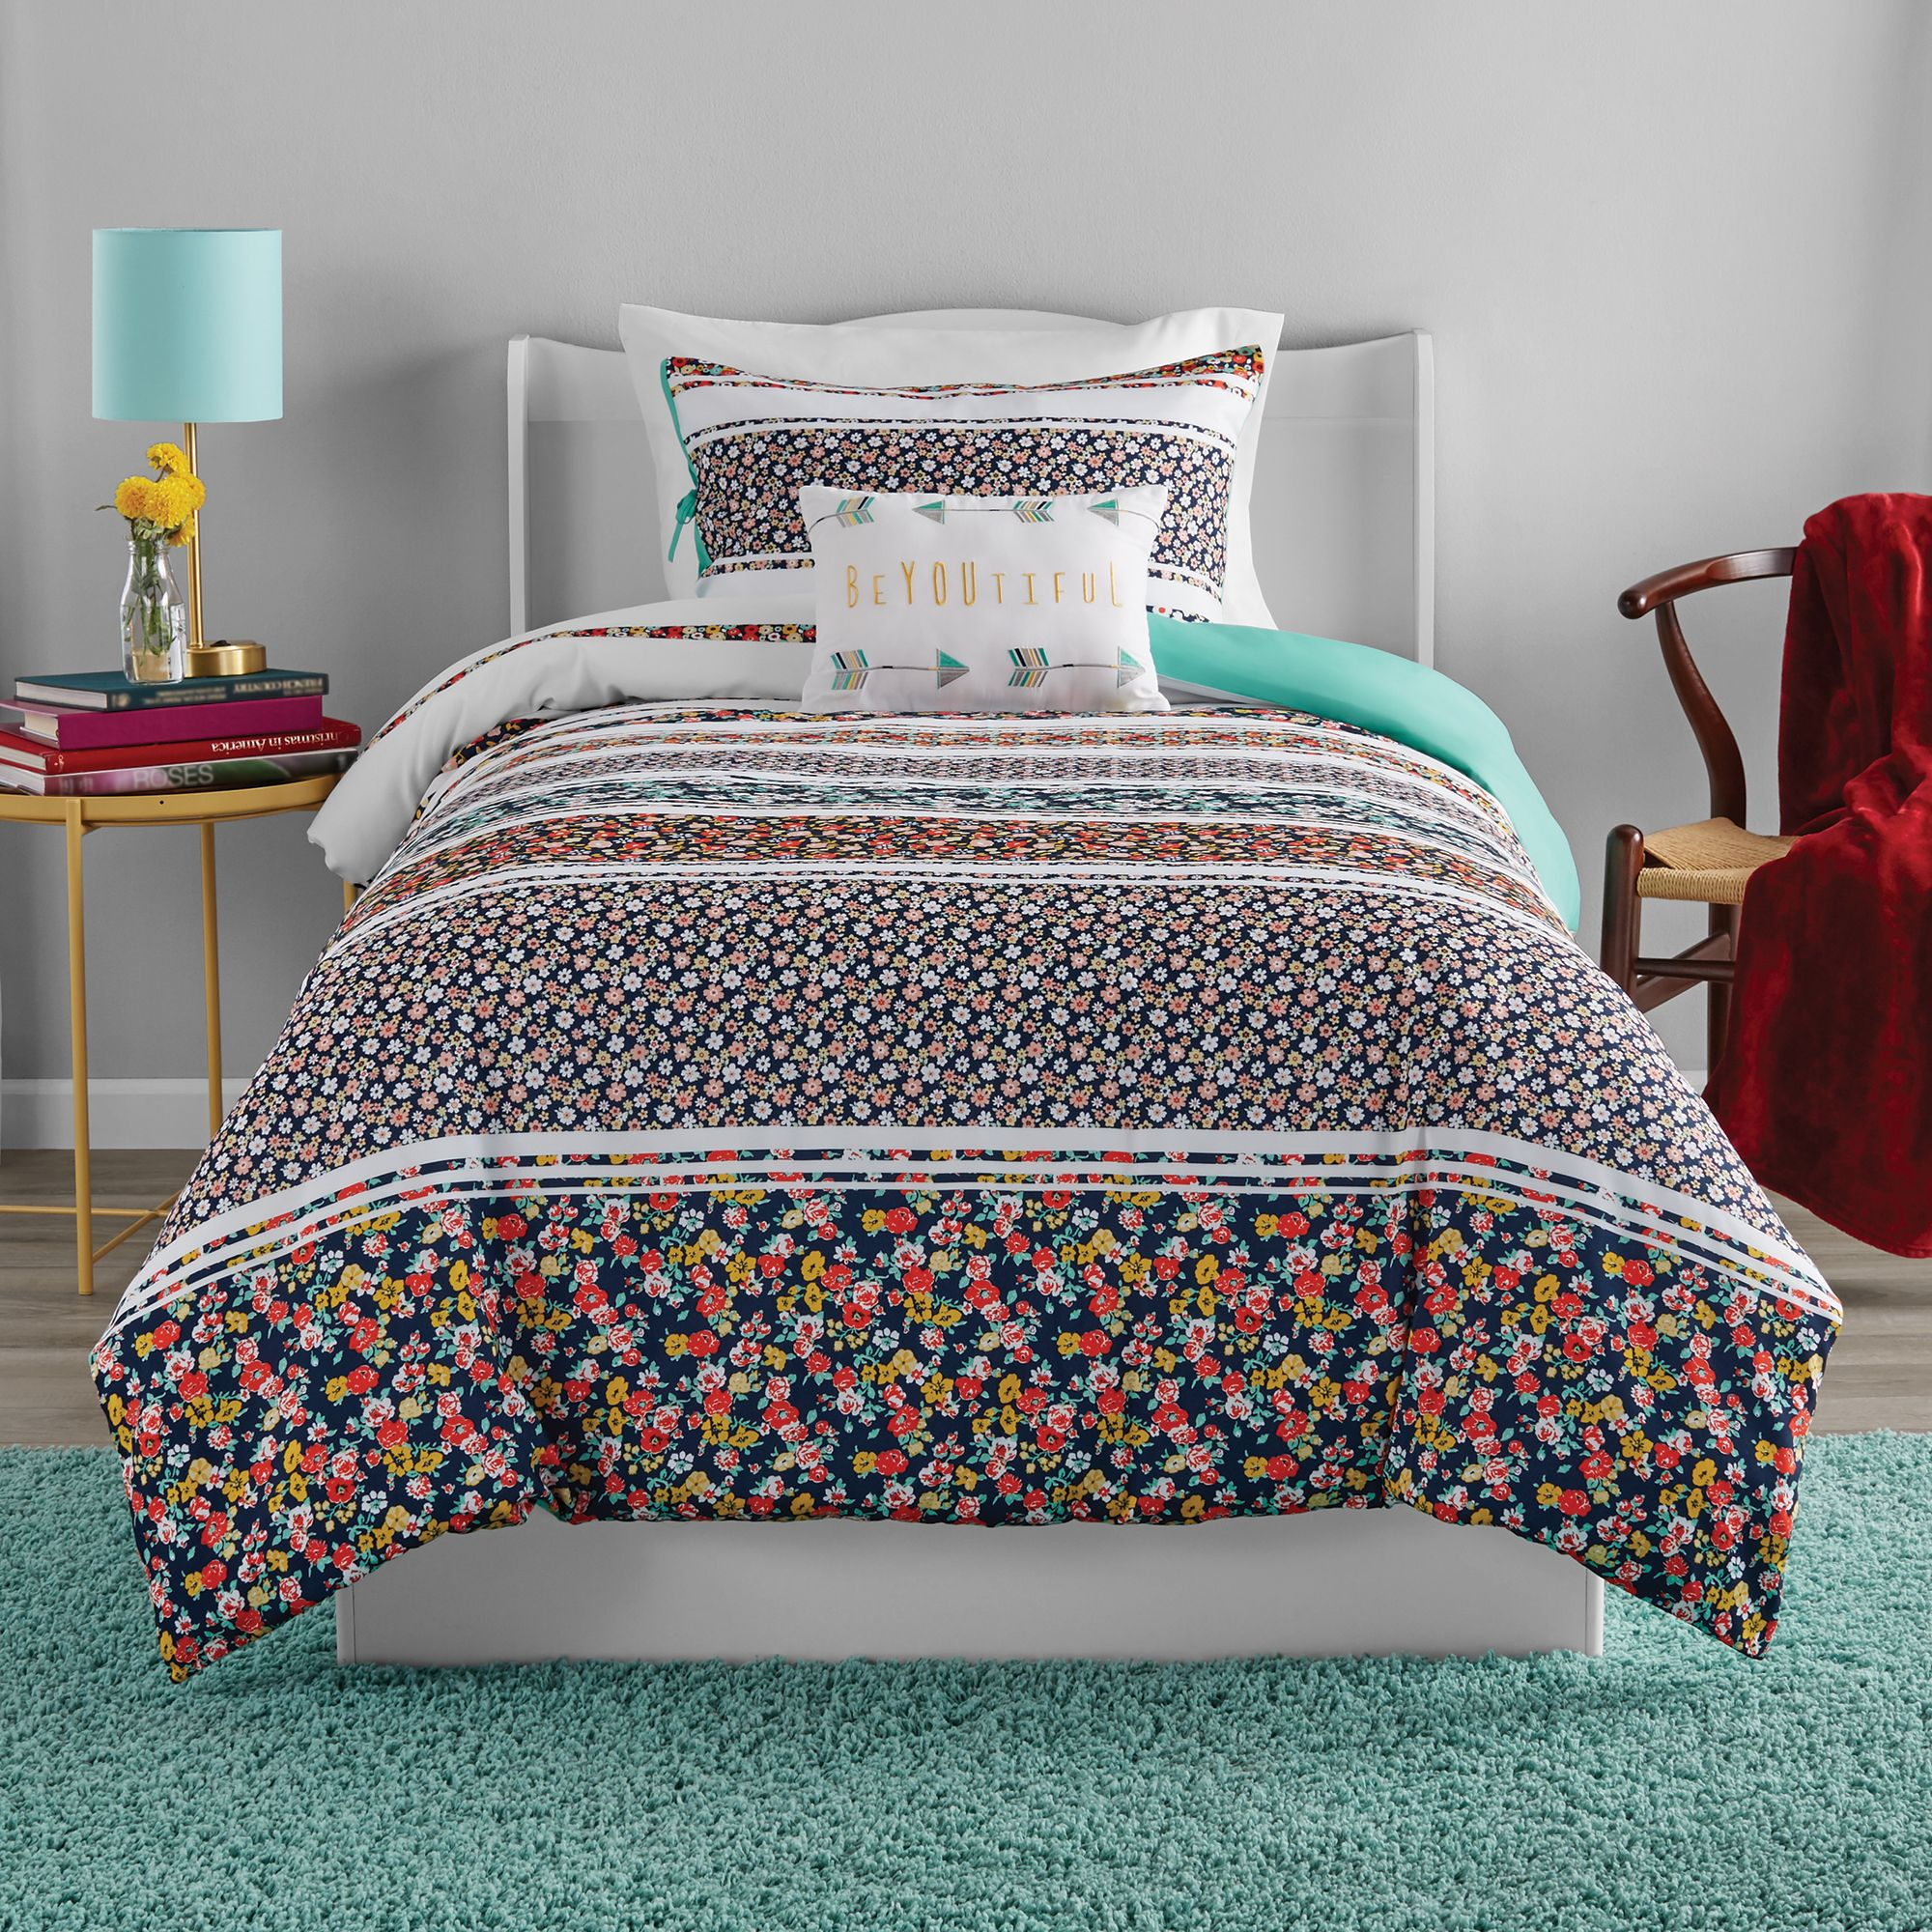 mainstays dual duvet cover bedding set with comforter filler